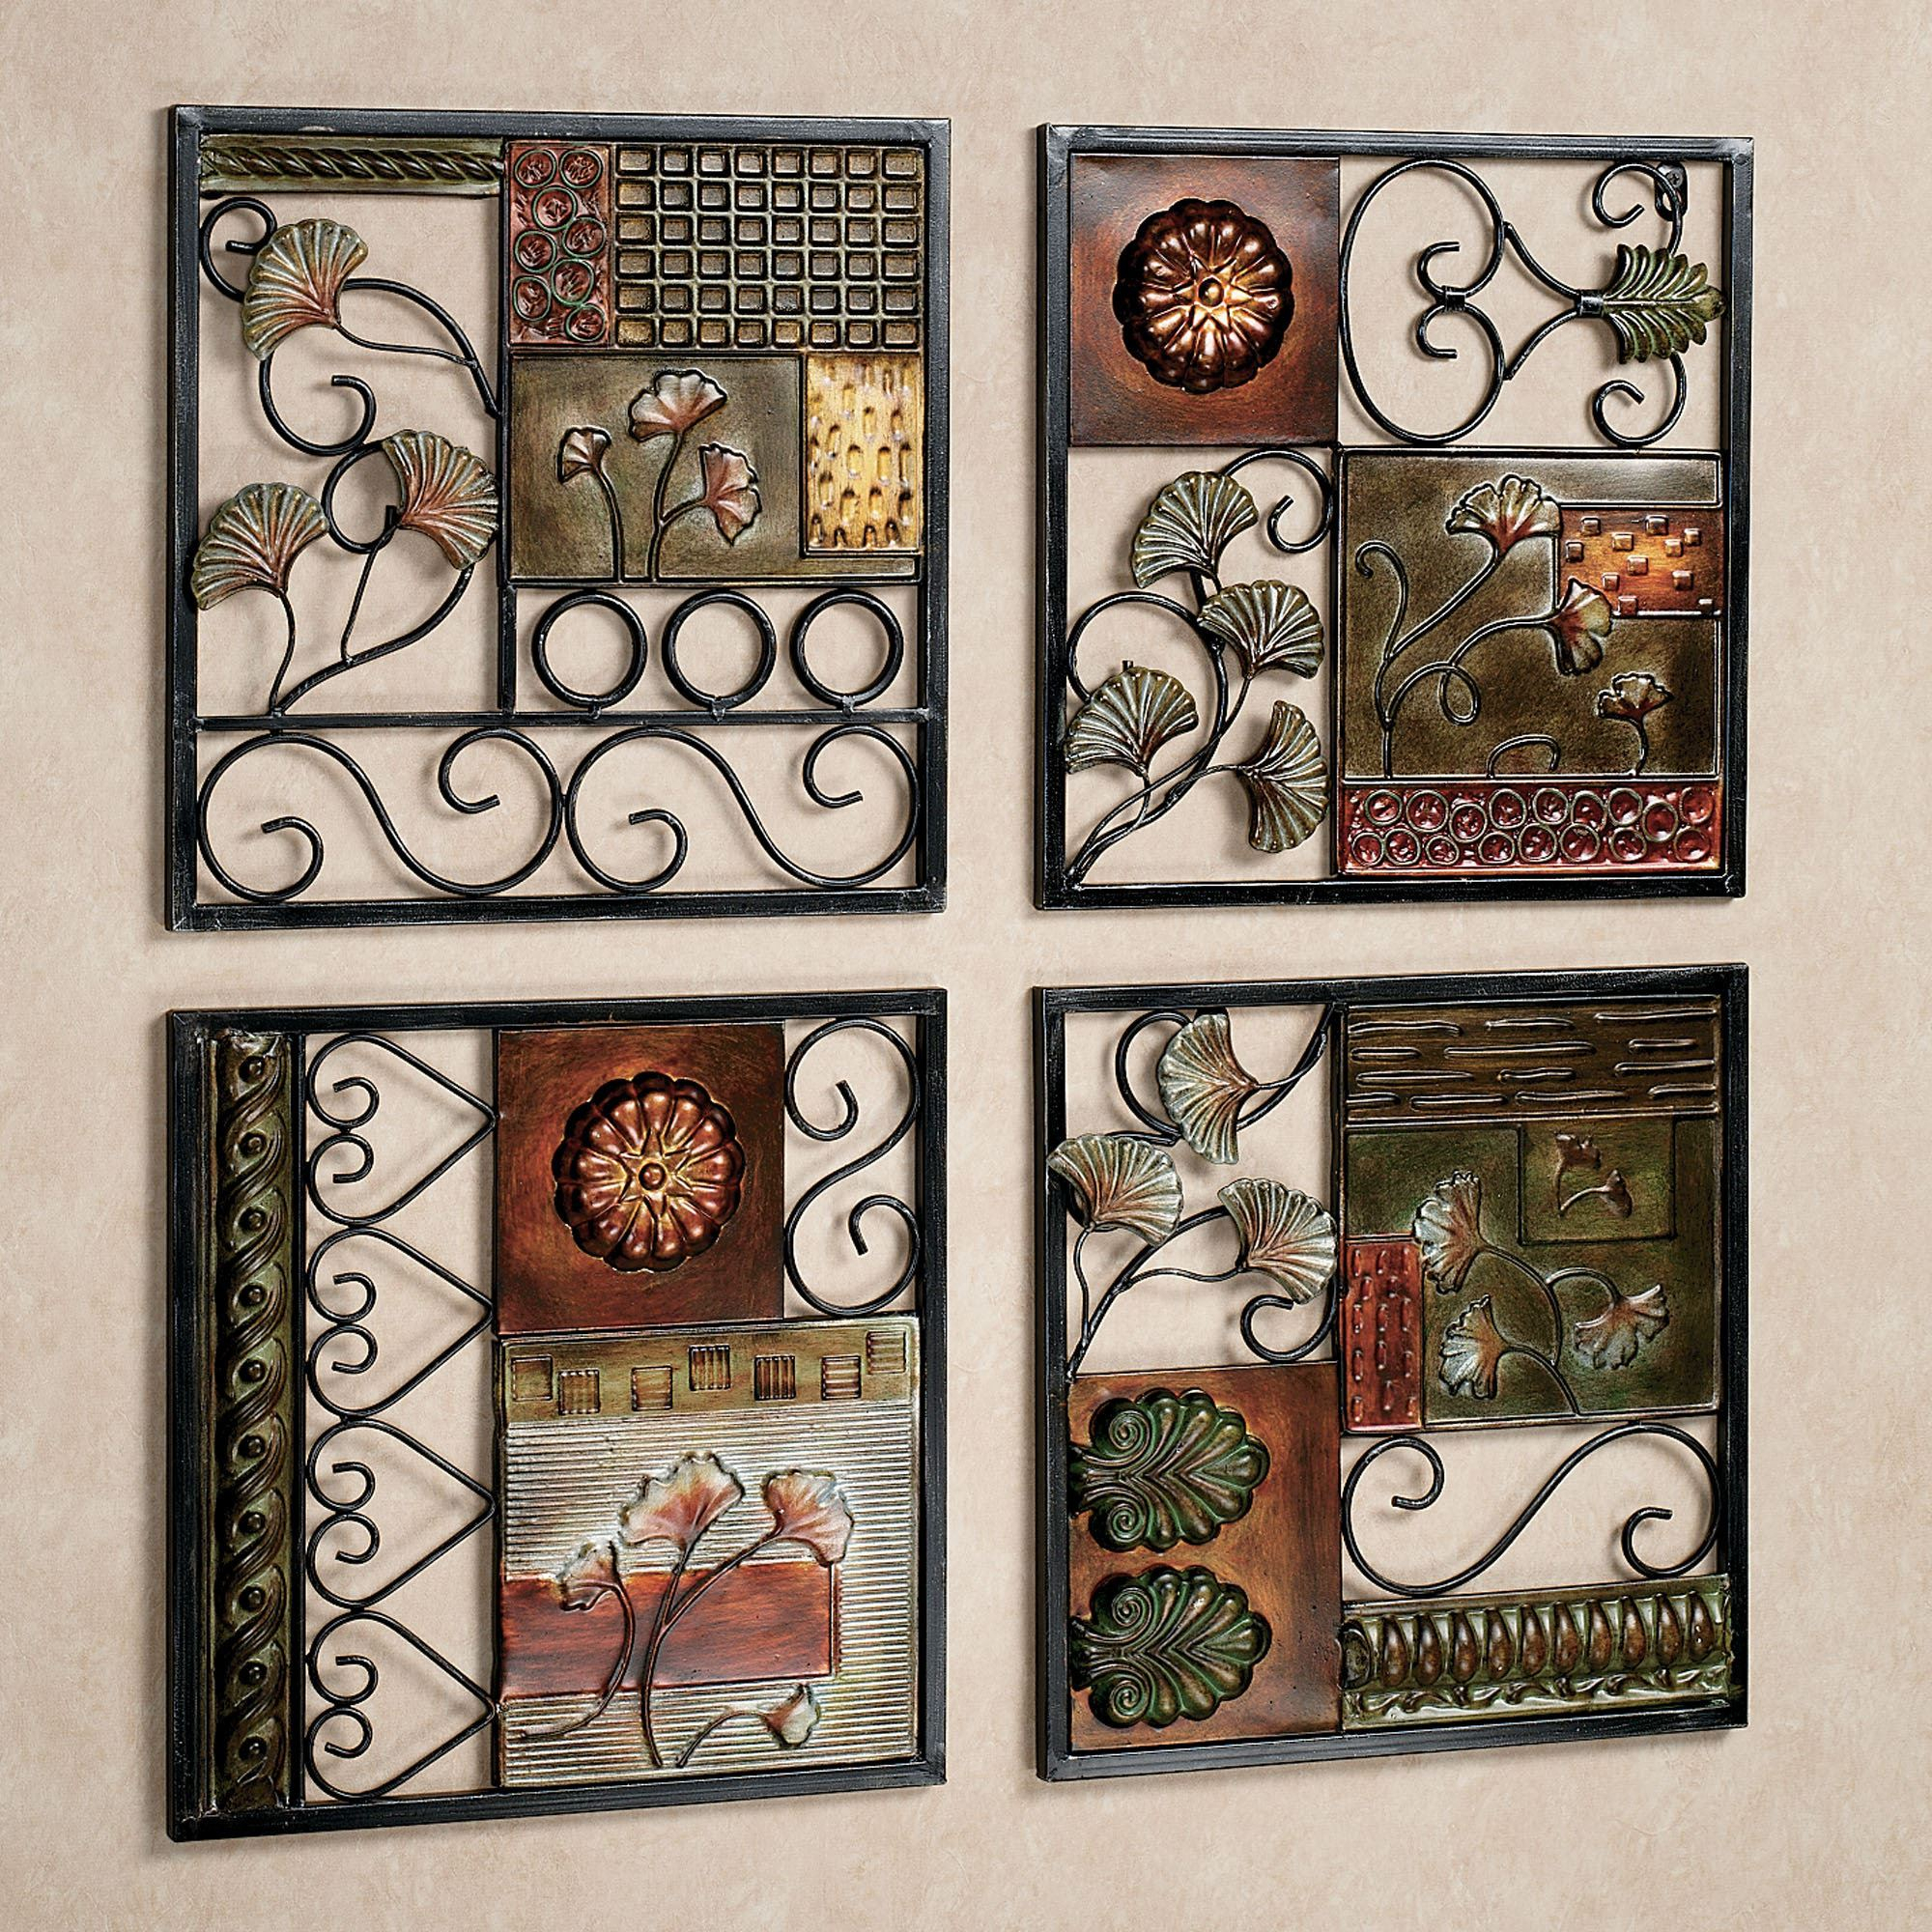 4 Piece Metal Wall Plaque Decor Sets With Regard To Most Current Dusk And Dawn Metal Wall Art Set (View 5 of 20)